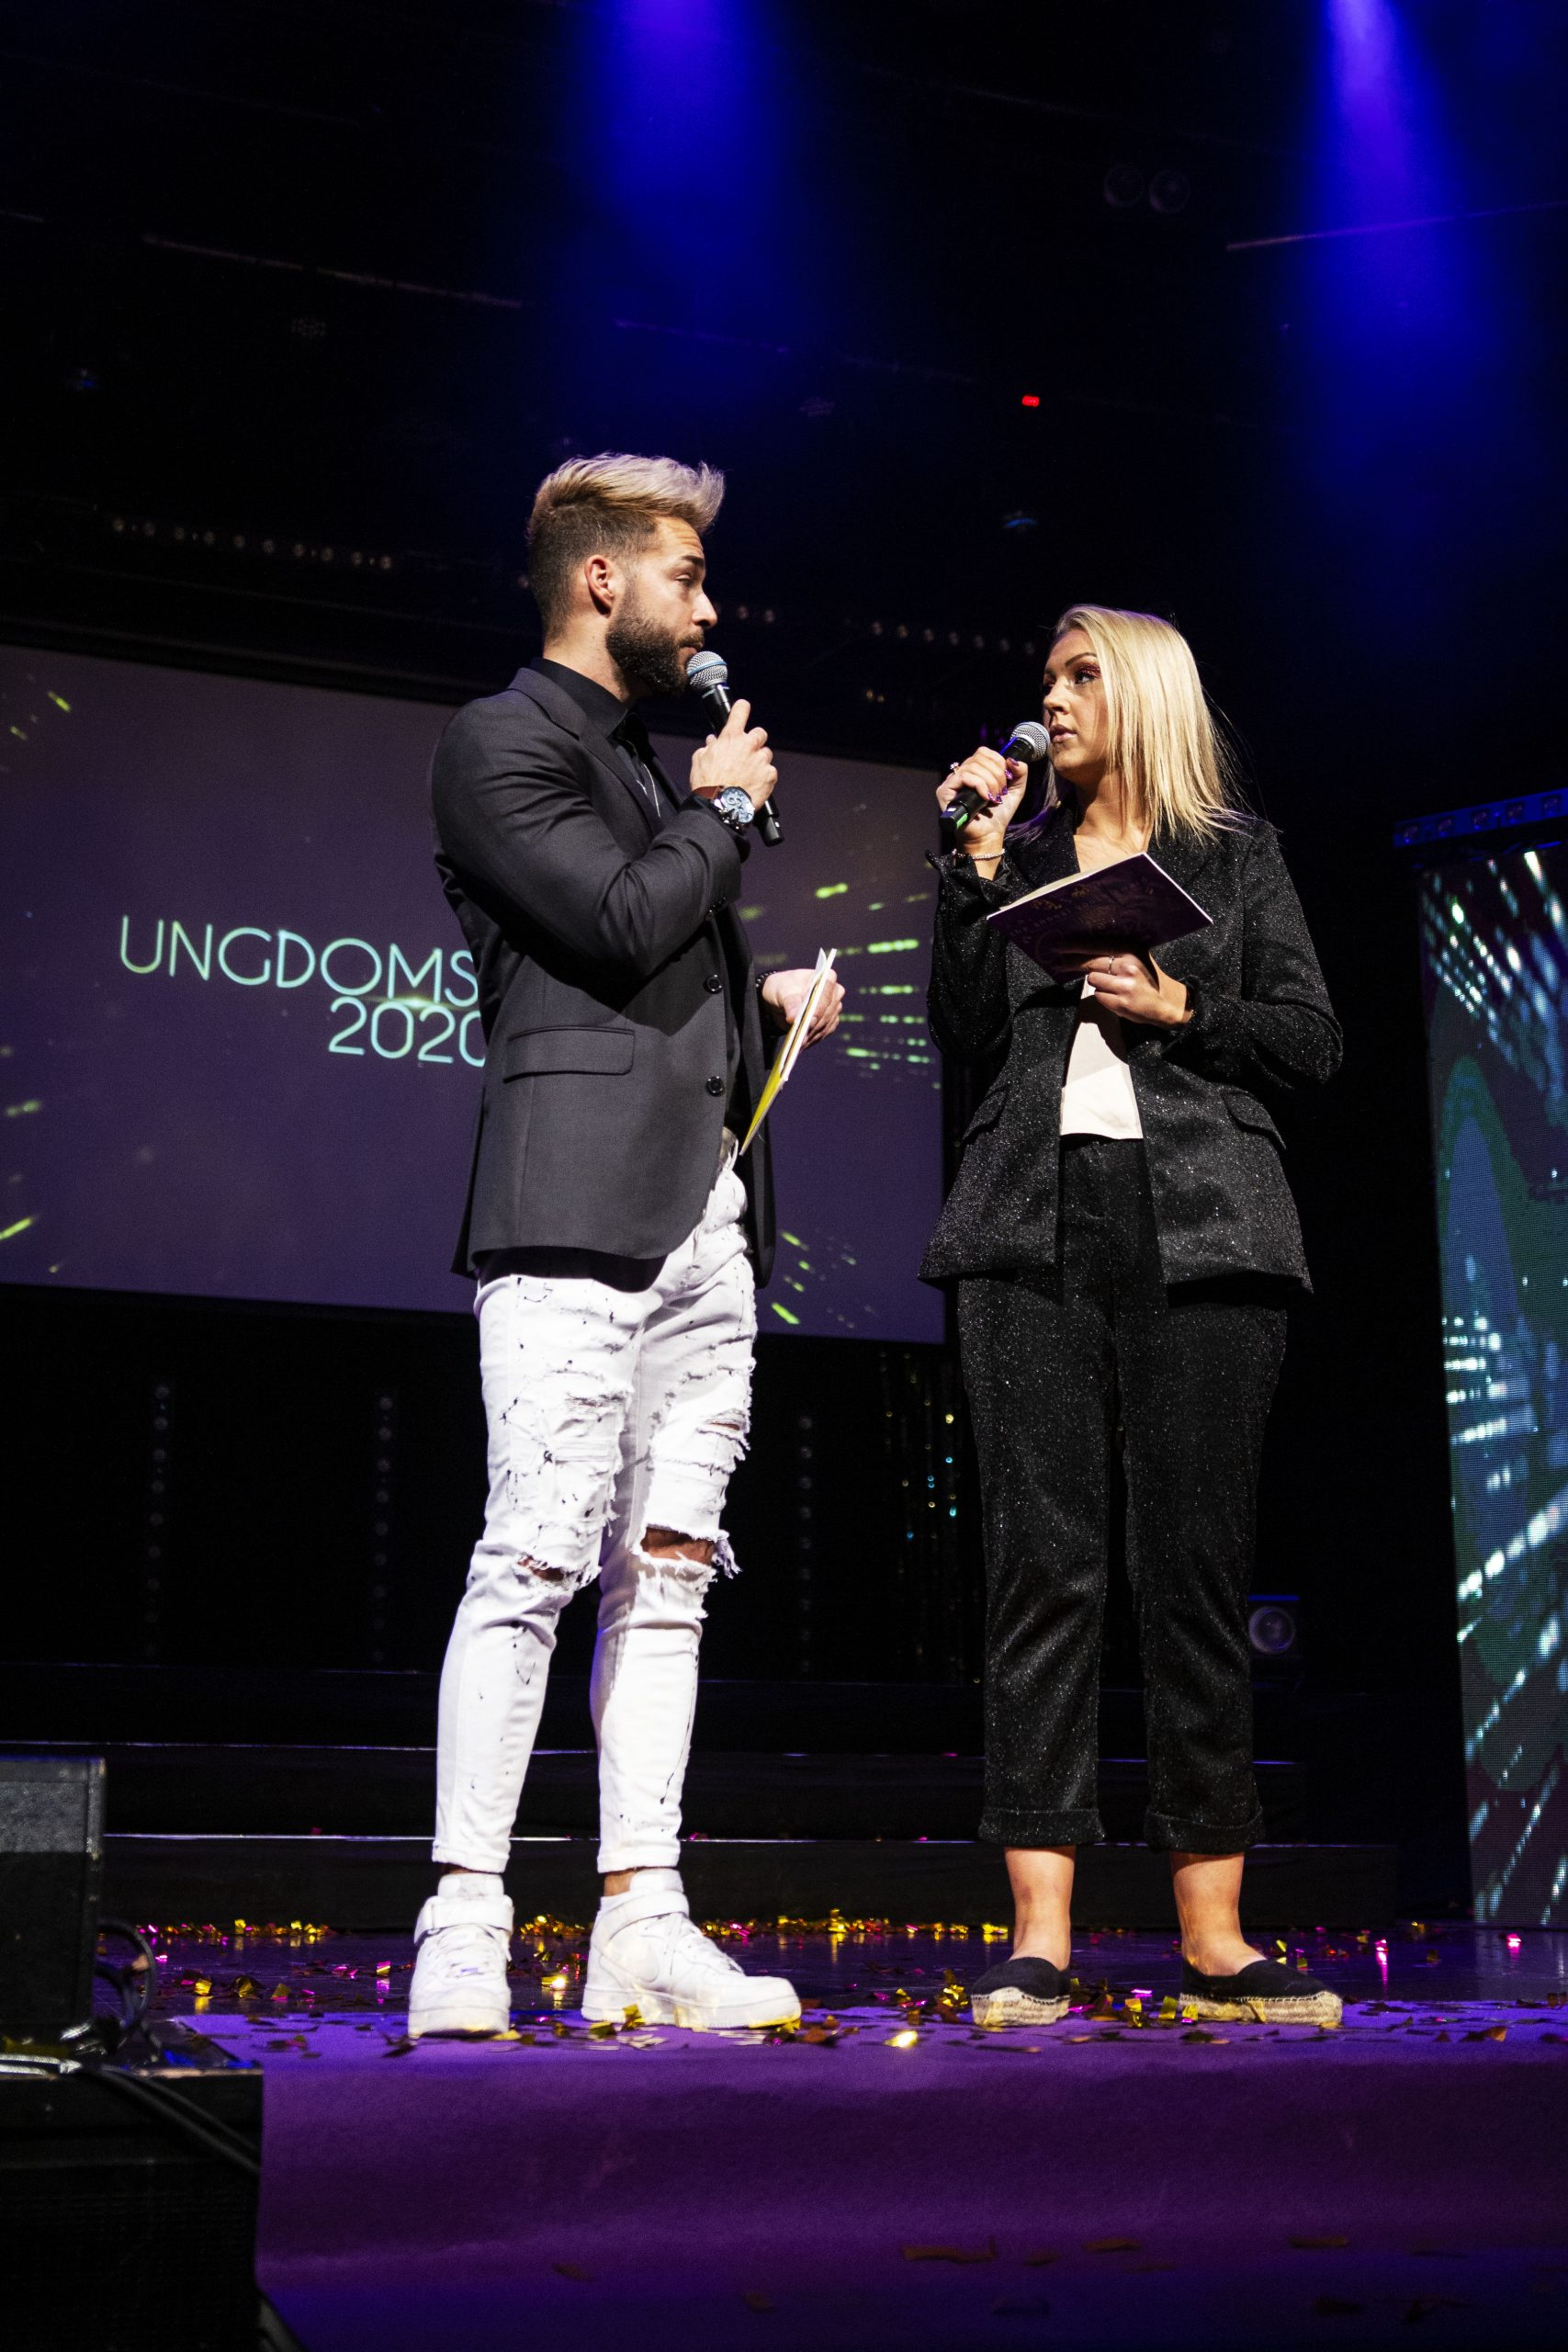 Ungdomsgalan – The Annual Youth Award